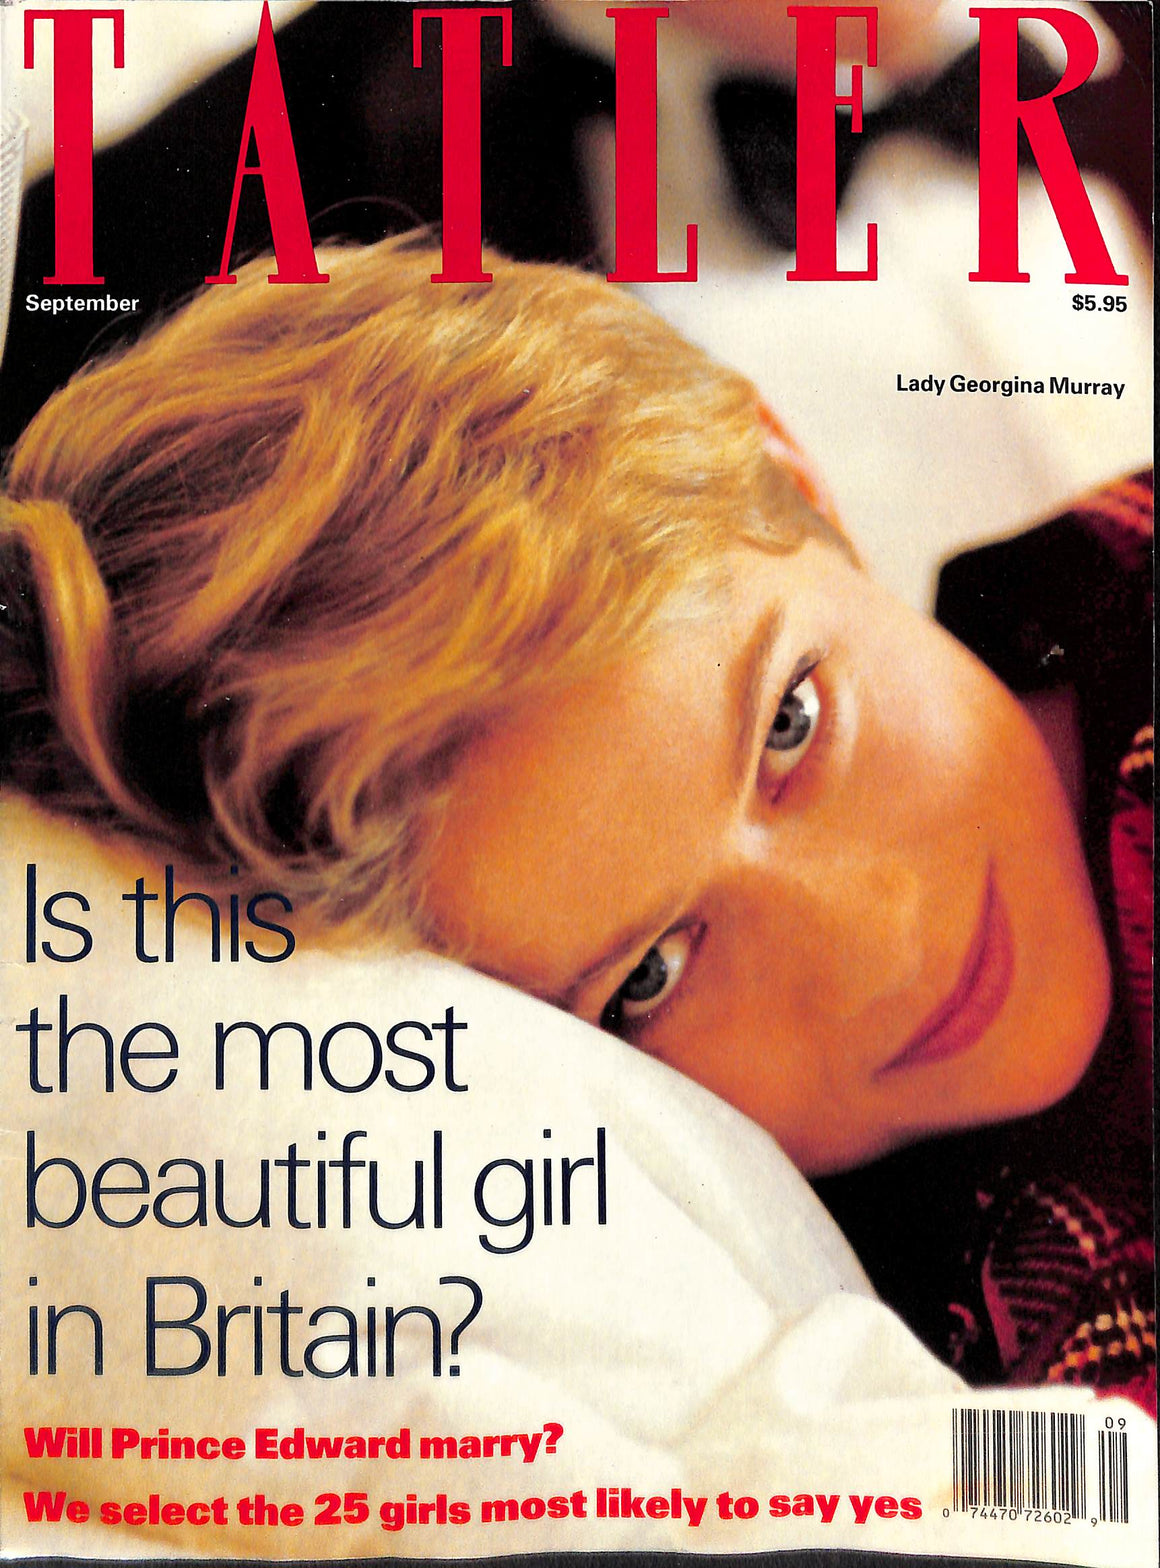 Tatler Volume 286 Number 8 September 1991 (SOLD!)